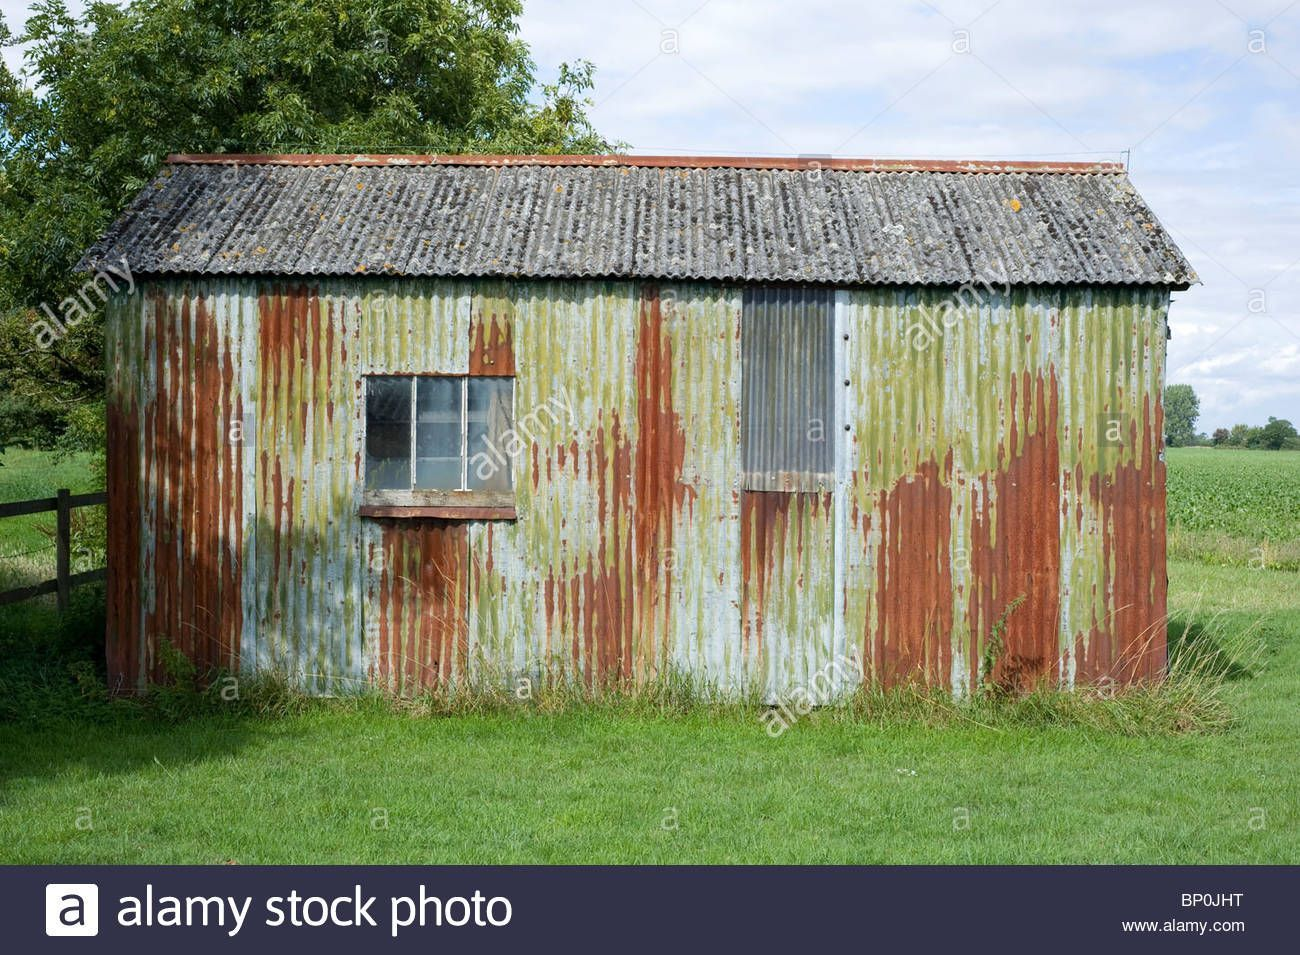 Metal Shed Kits Lowes 10x10 Shed Plans Pdf Corrugated Iron Sheds Uk 10x10 Shed Plans Rustic Shed Garden Shed Kits